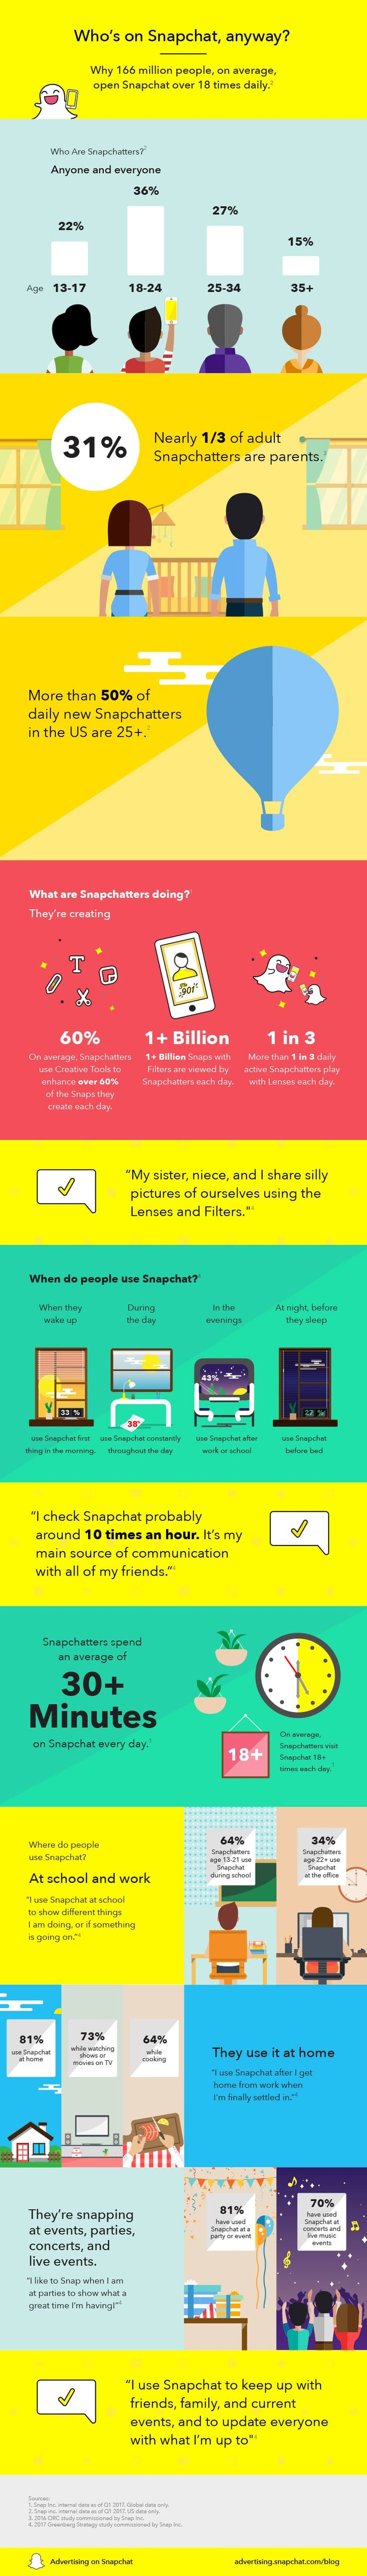 Who's using Snapchat? It still skews young, and the 35+ bracket has dropped to 15%